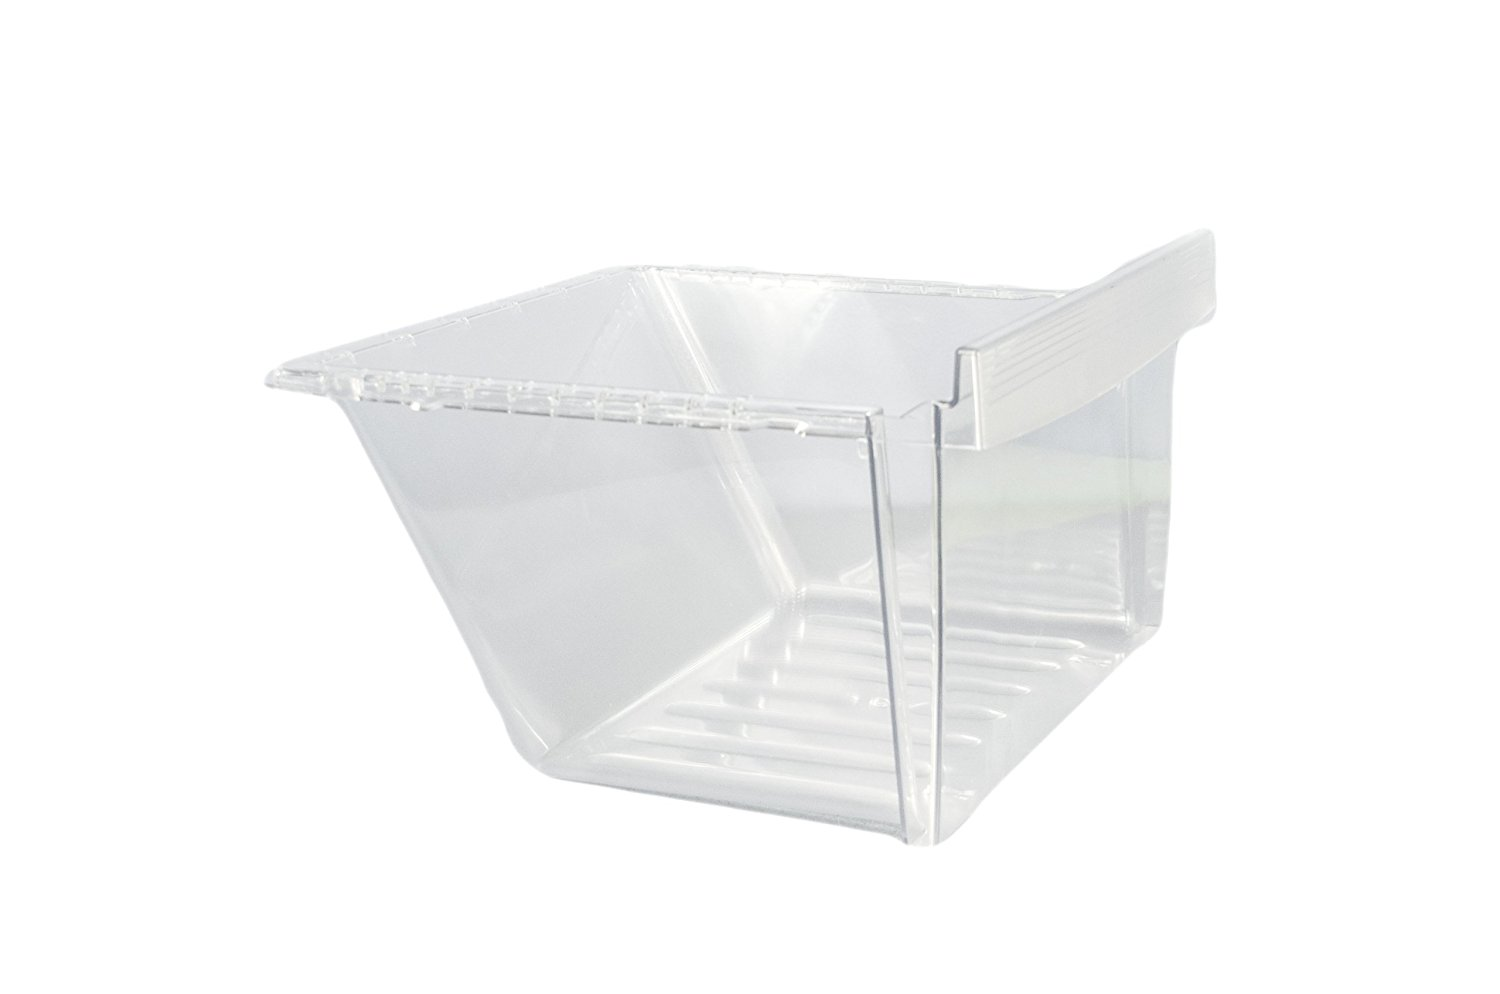 LG Electronics AJP72994802 Refrigerator Vegetable Crisper Drawer, Clear